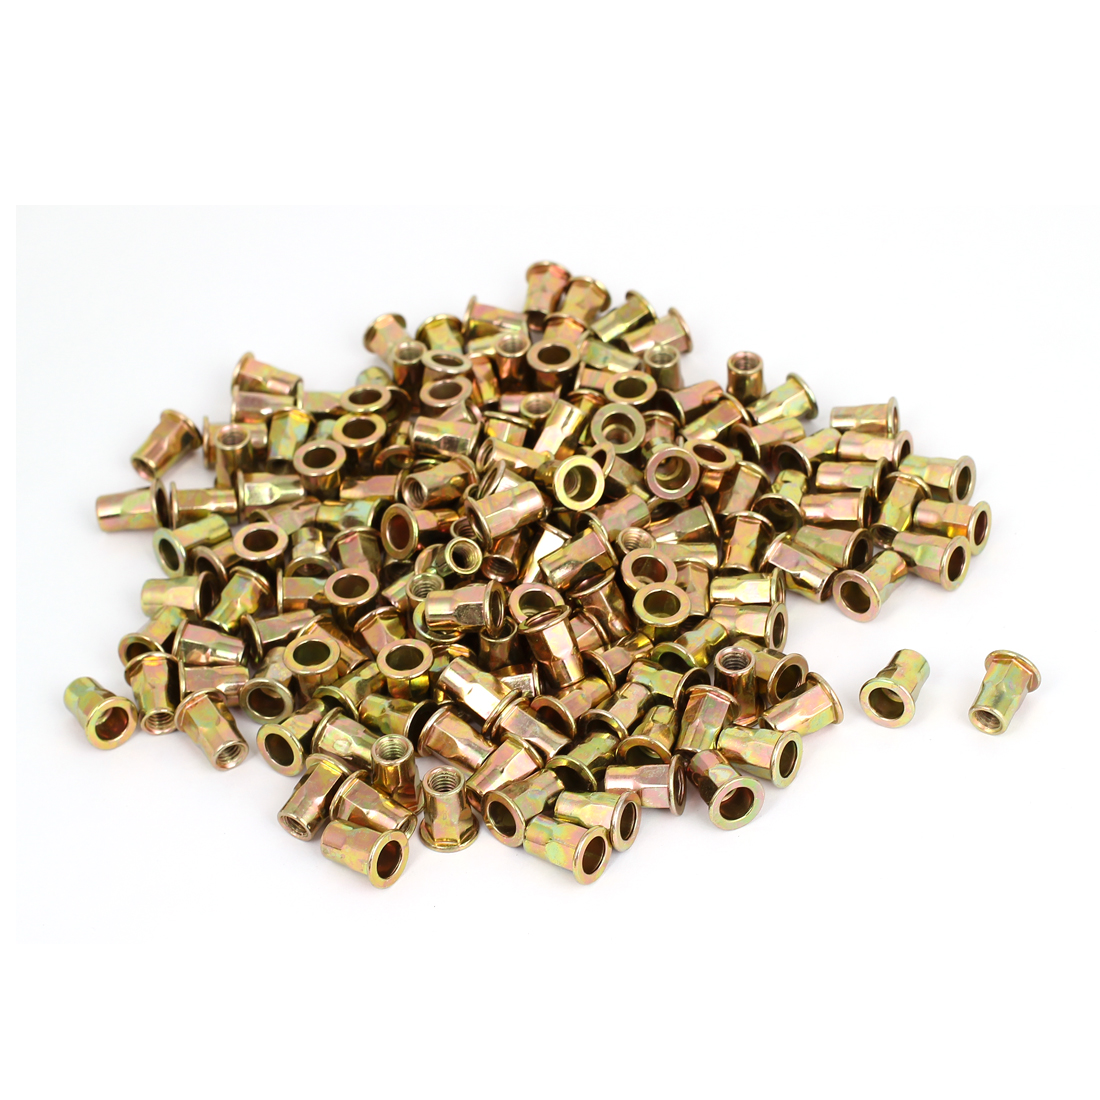 300pcs M6 Countersunk Head Half Hex Body Insert Rivets Nuts Nutserts Fasteners